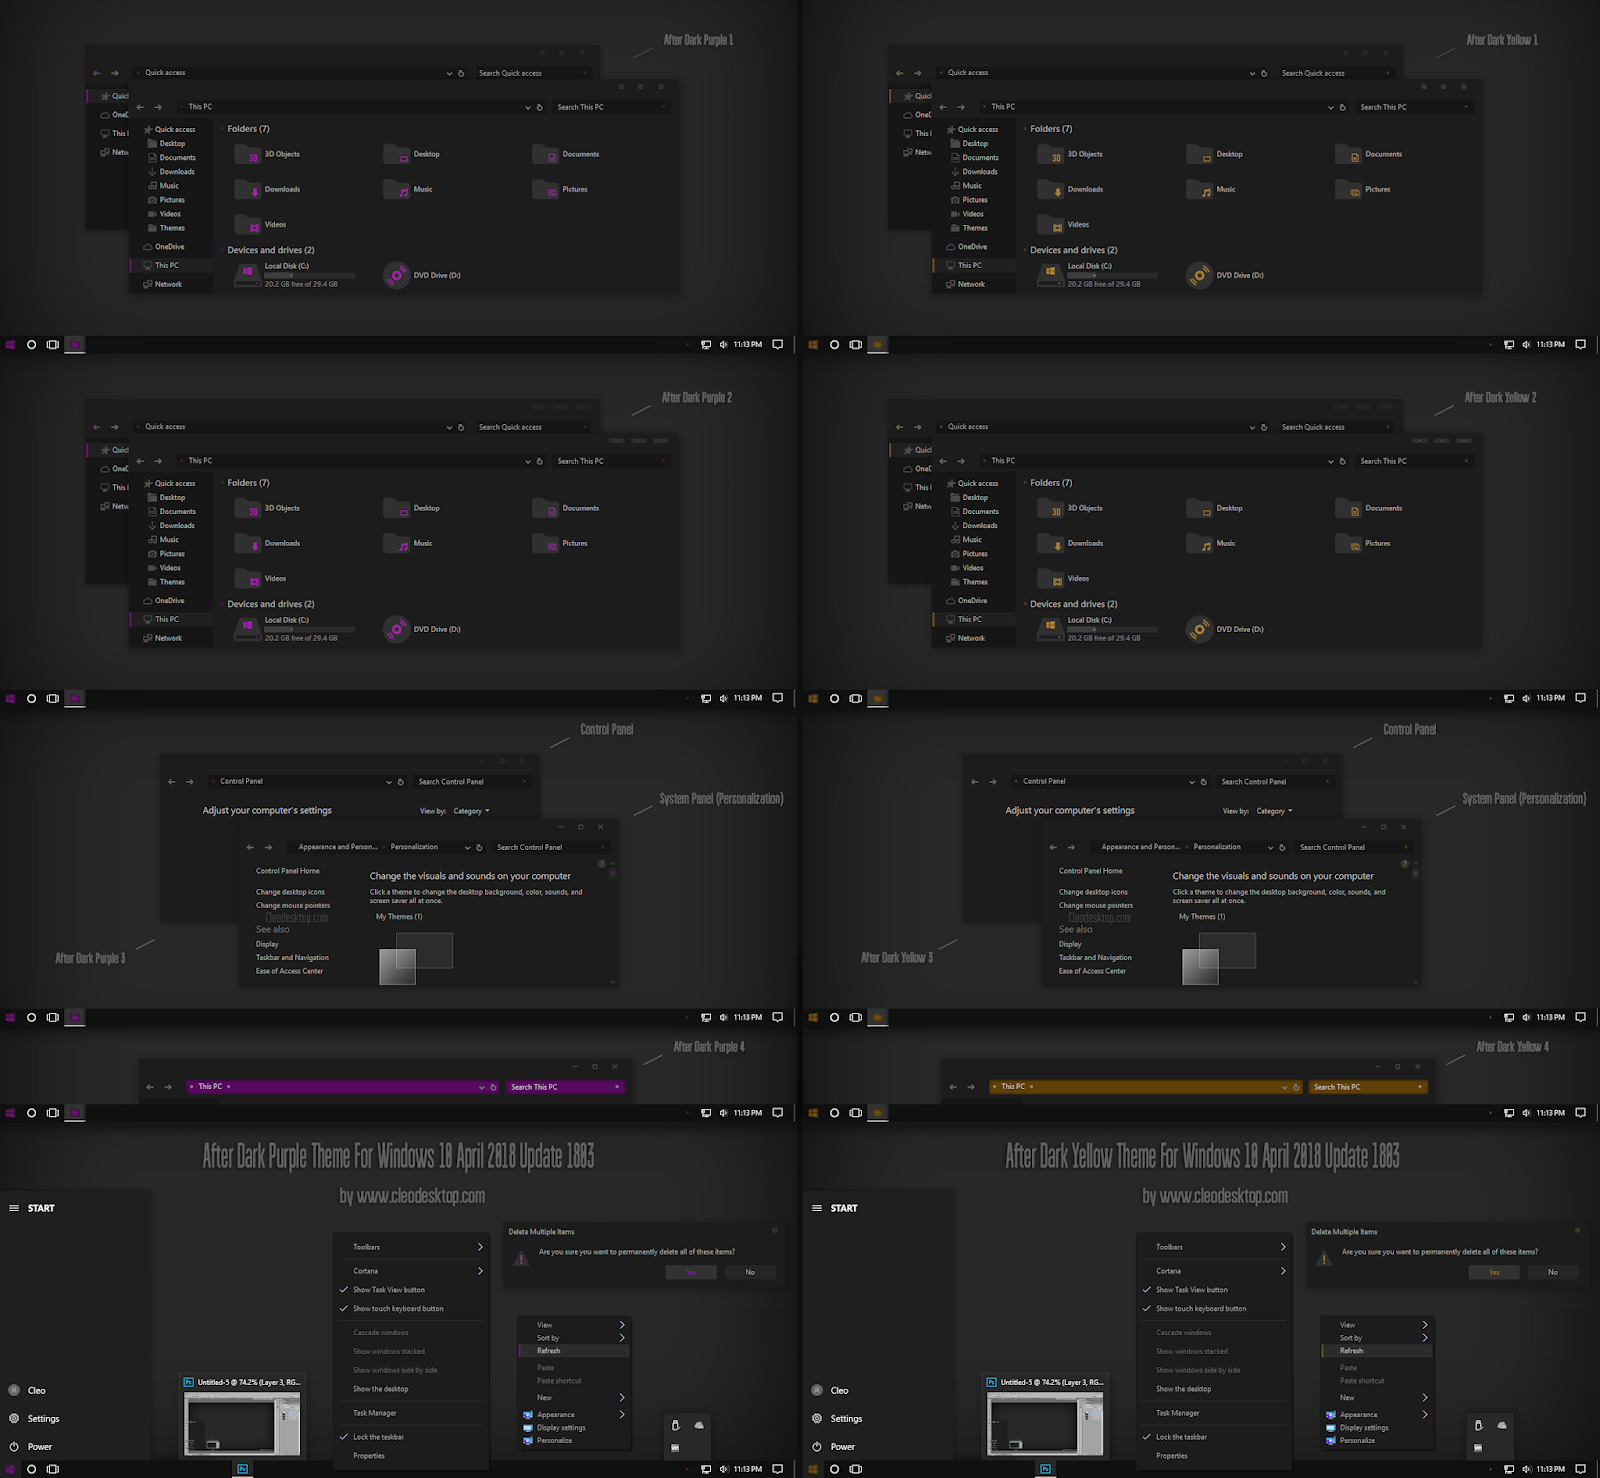 Windows10 Themes I Cleodesktop After Dark Purple and